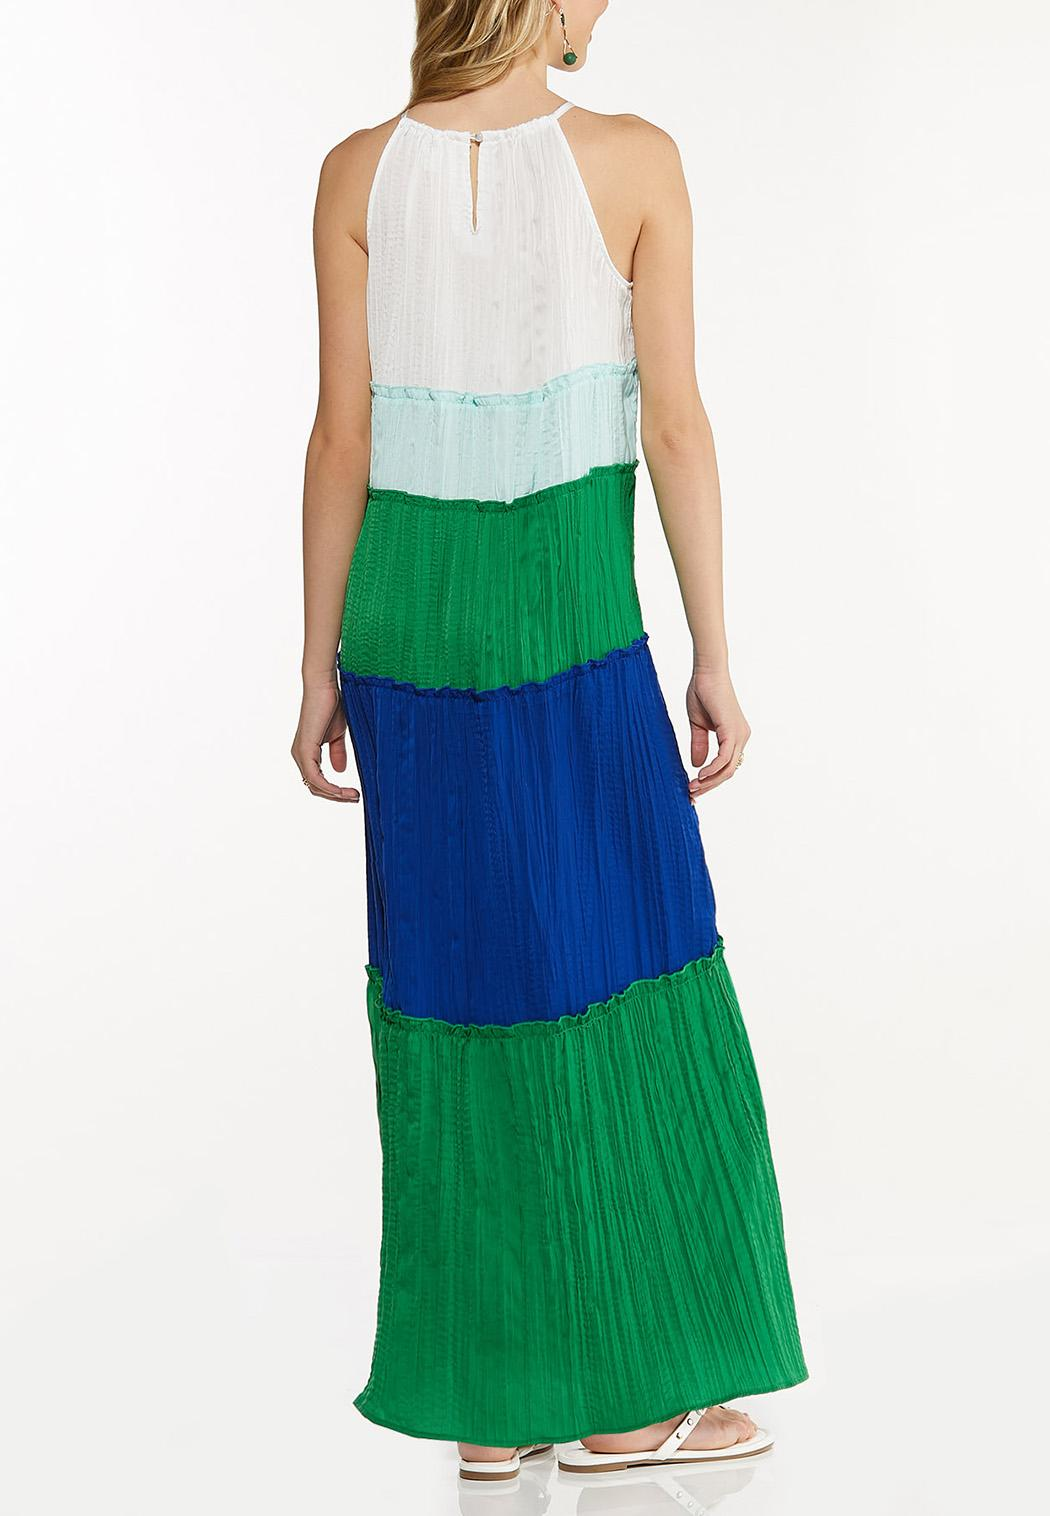 Petite Pleated Colorblock Maxi Dress (Item #44524976)